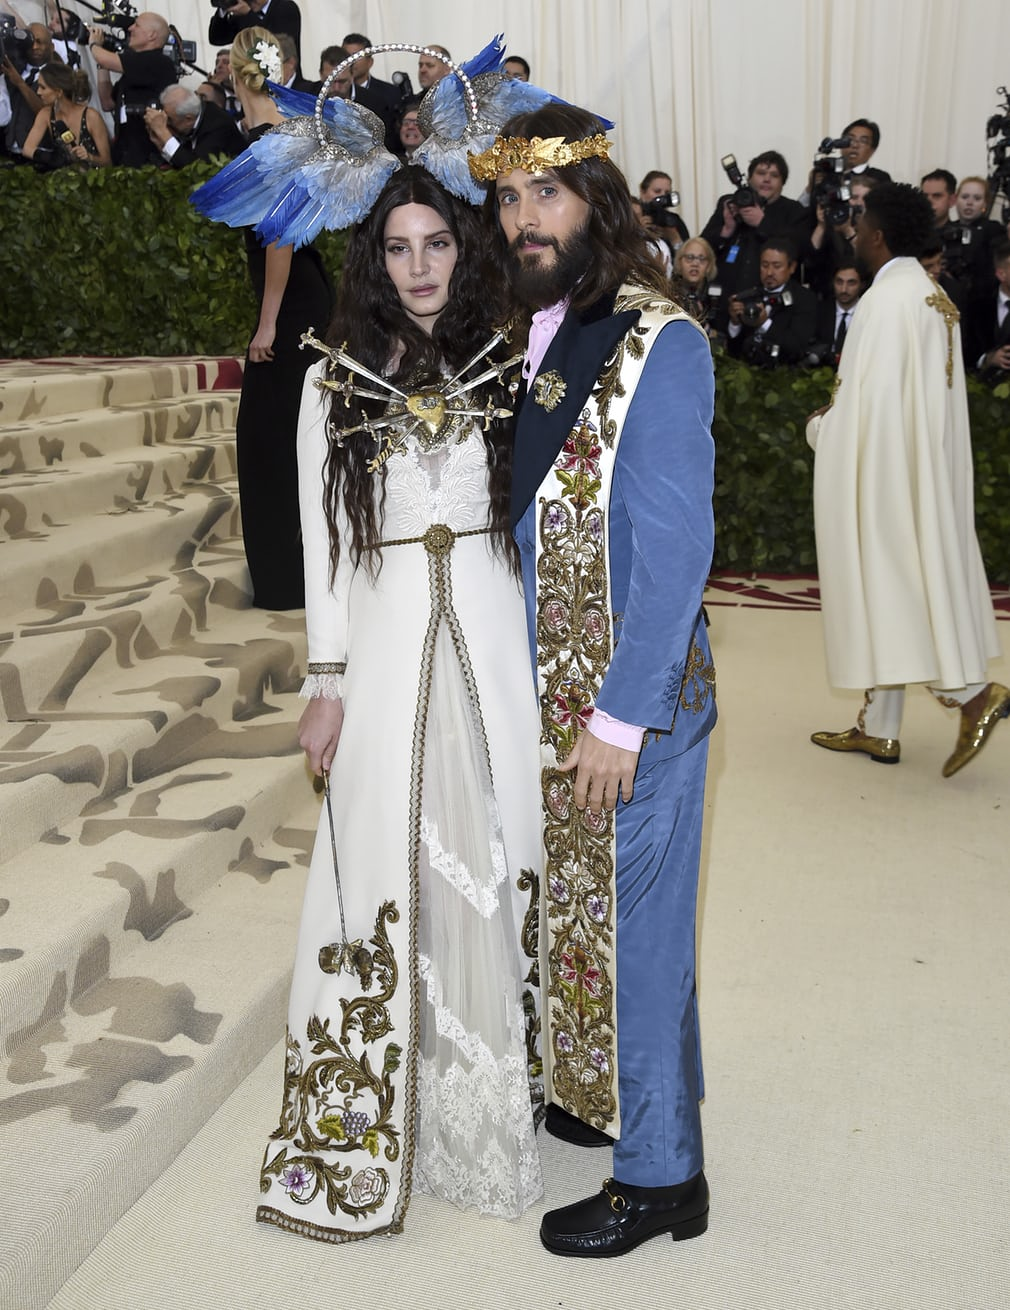 Lana Del Rey and Jared Leto